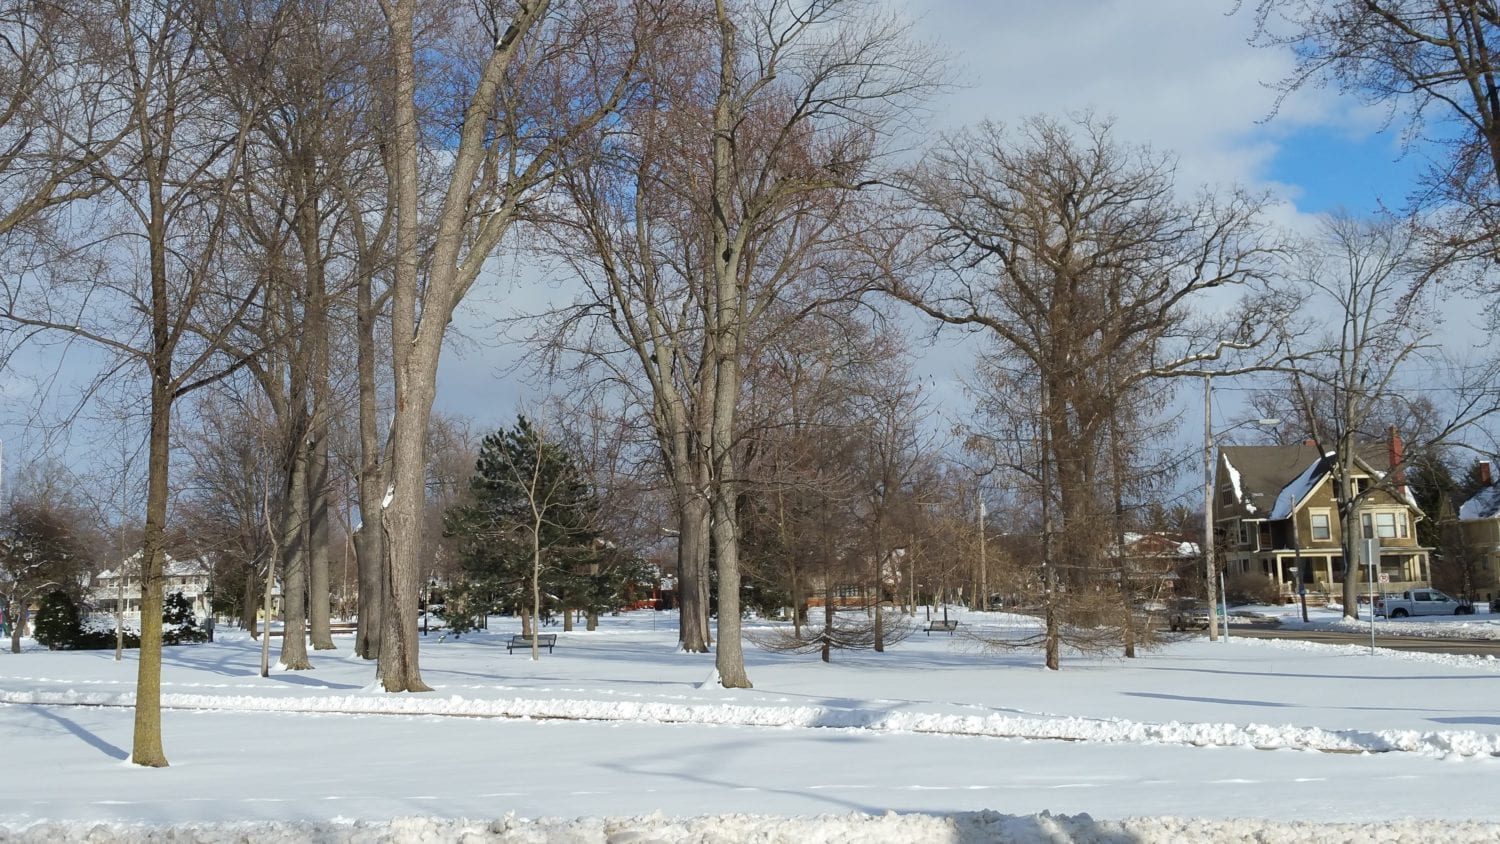 Snow covered City Park, Appleton, WI